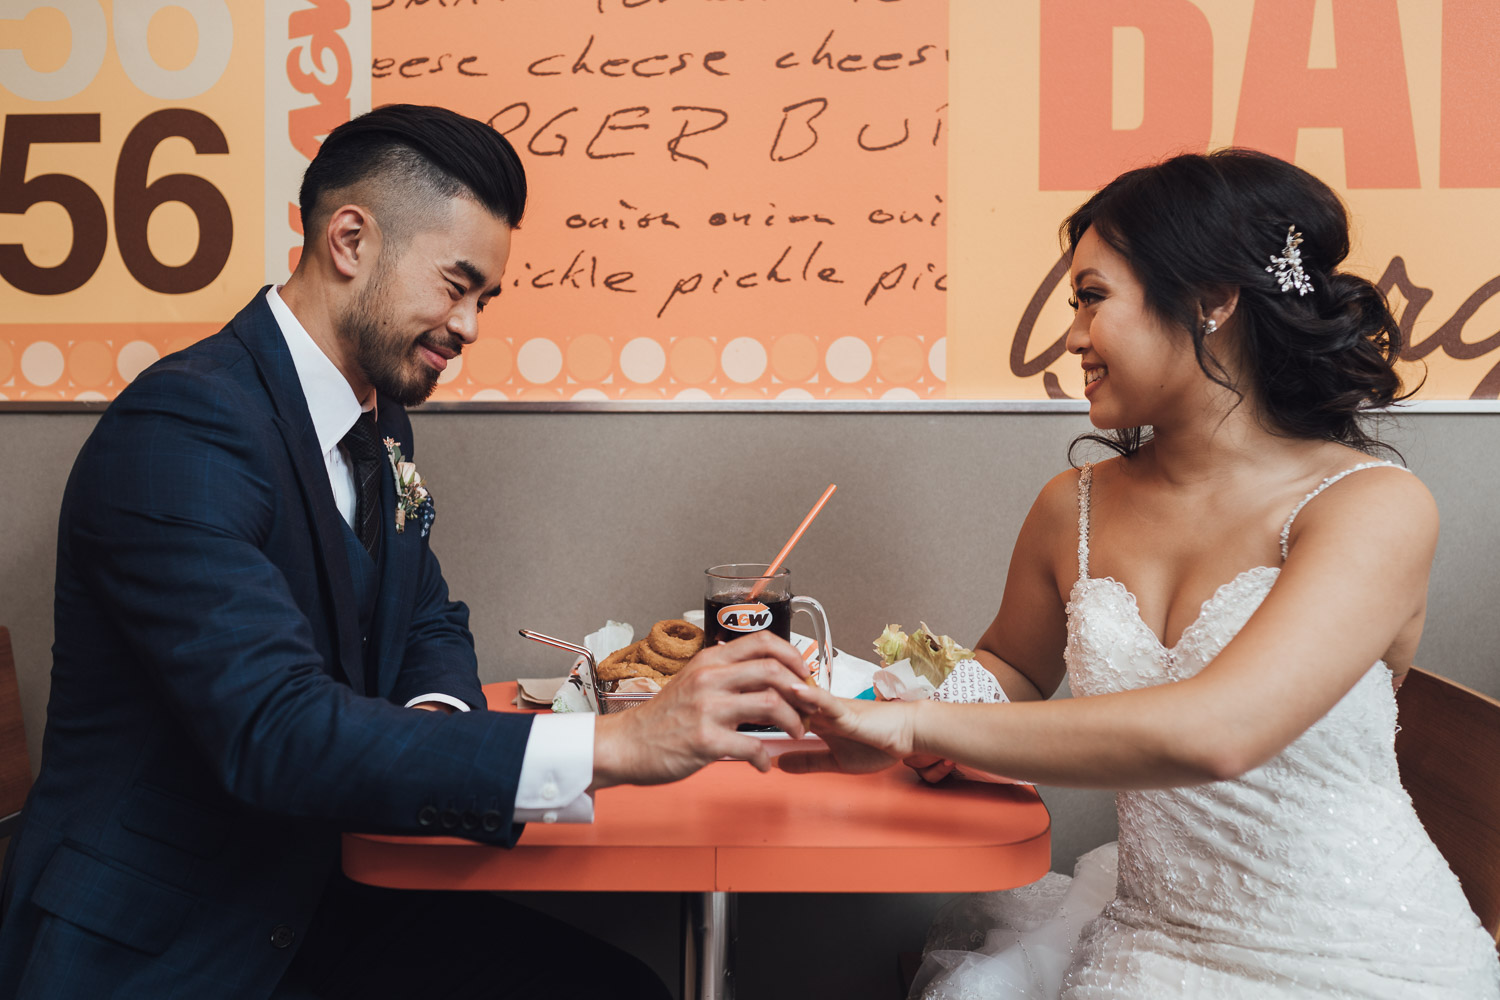 a&w restaurant wedding fun vancouver bc photography